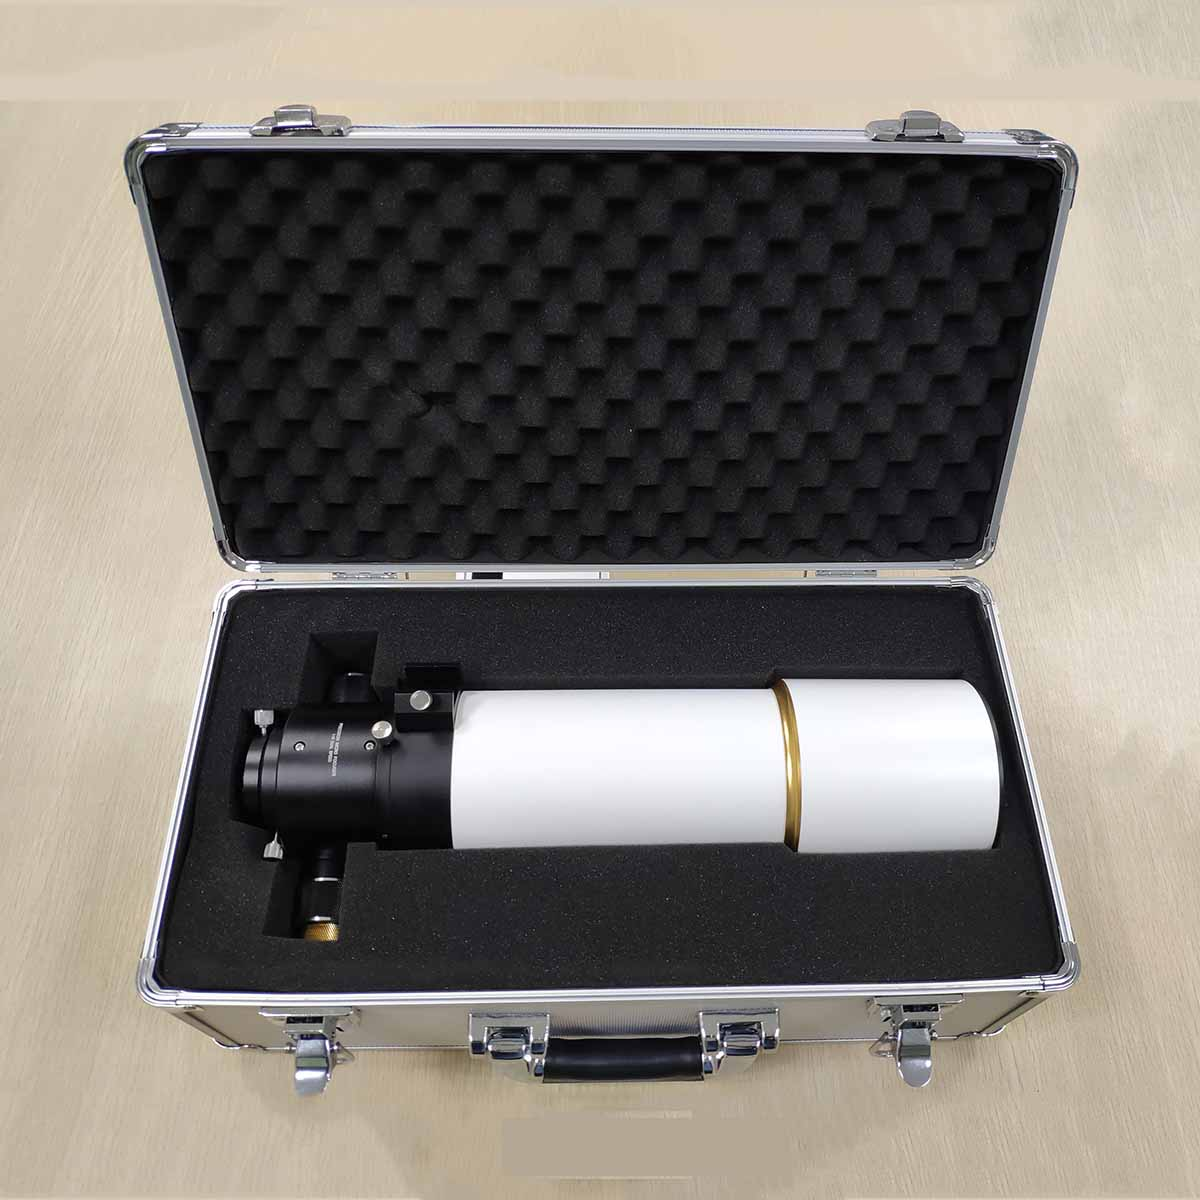 SVBONY 2 inch F50090 Telescope SV48 F5.5 Refractor Professional Astronomical OTA Astrophotography Space Moon Double Lens F9341B